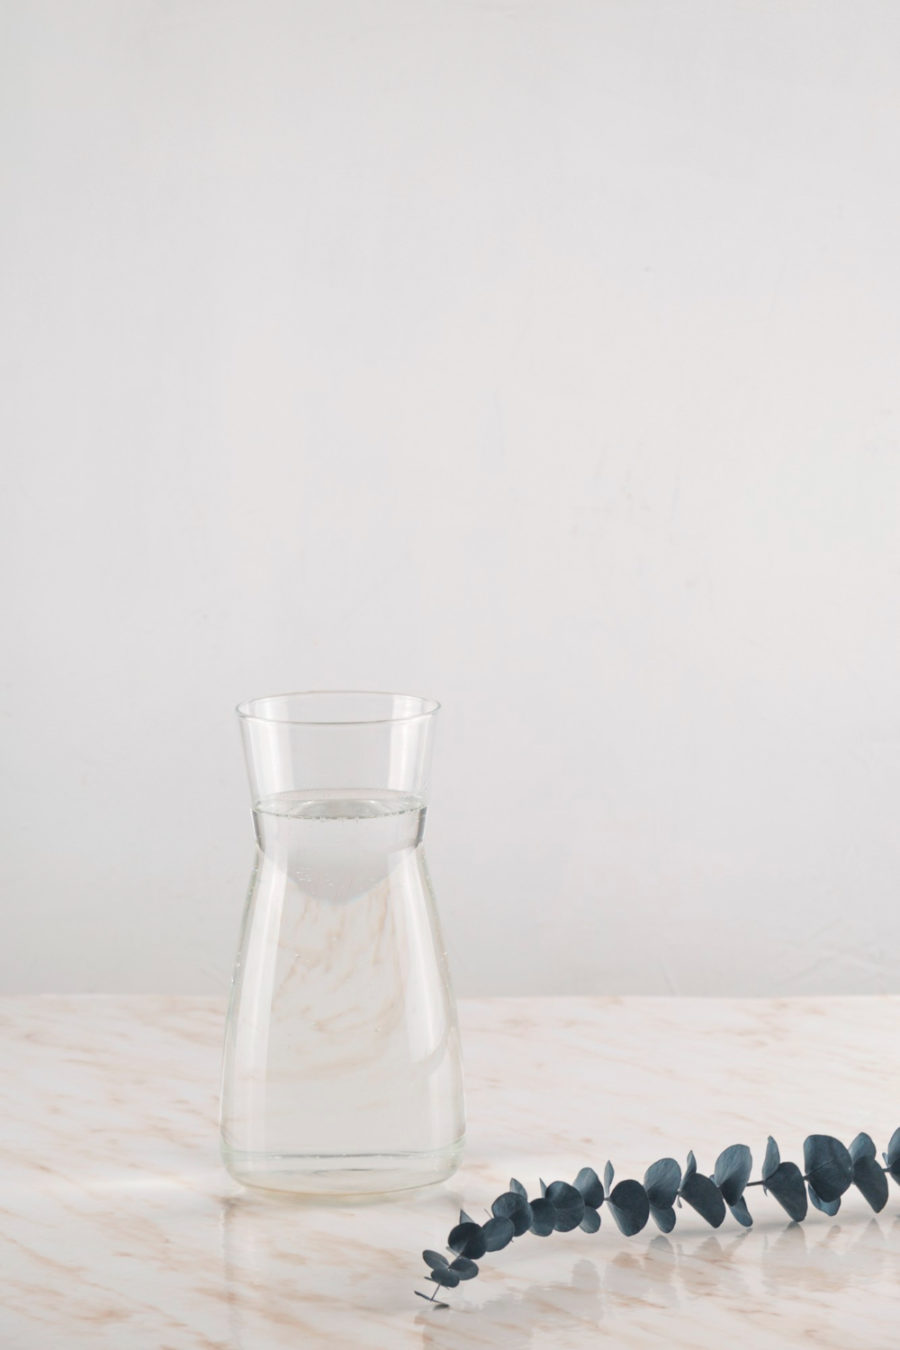 Modern water decanter with eucalyptus branches in minimalism style